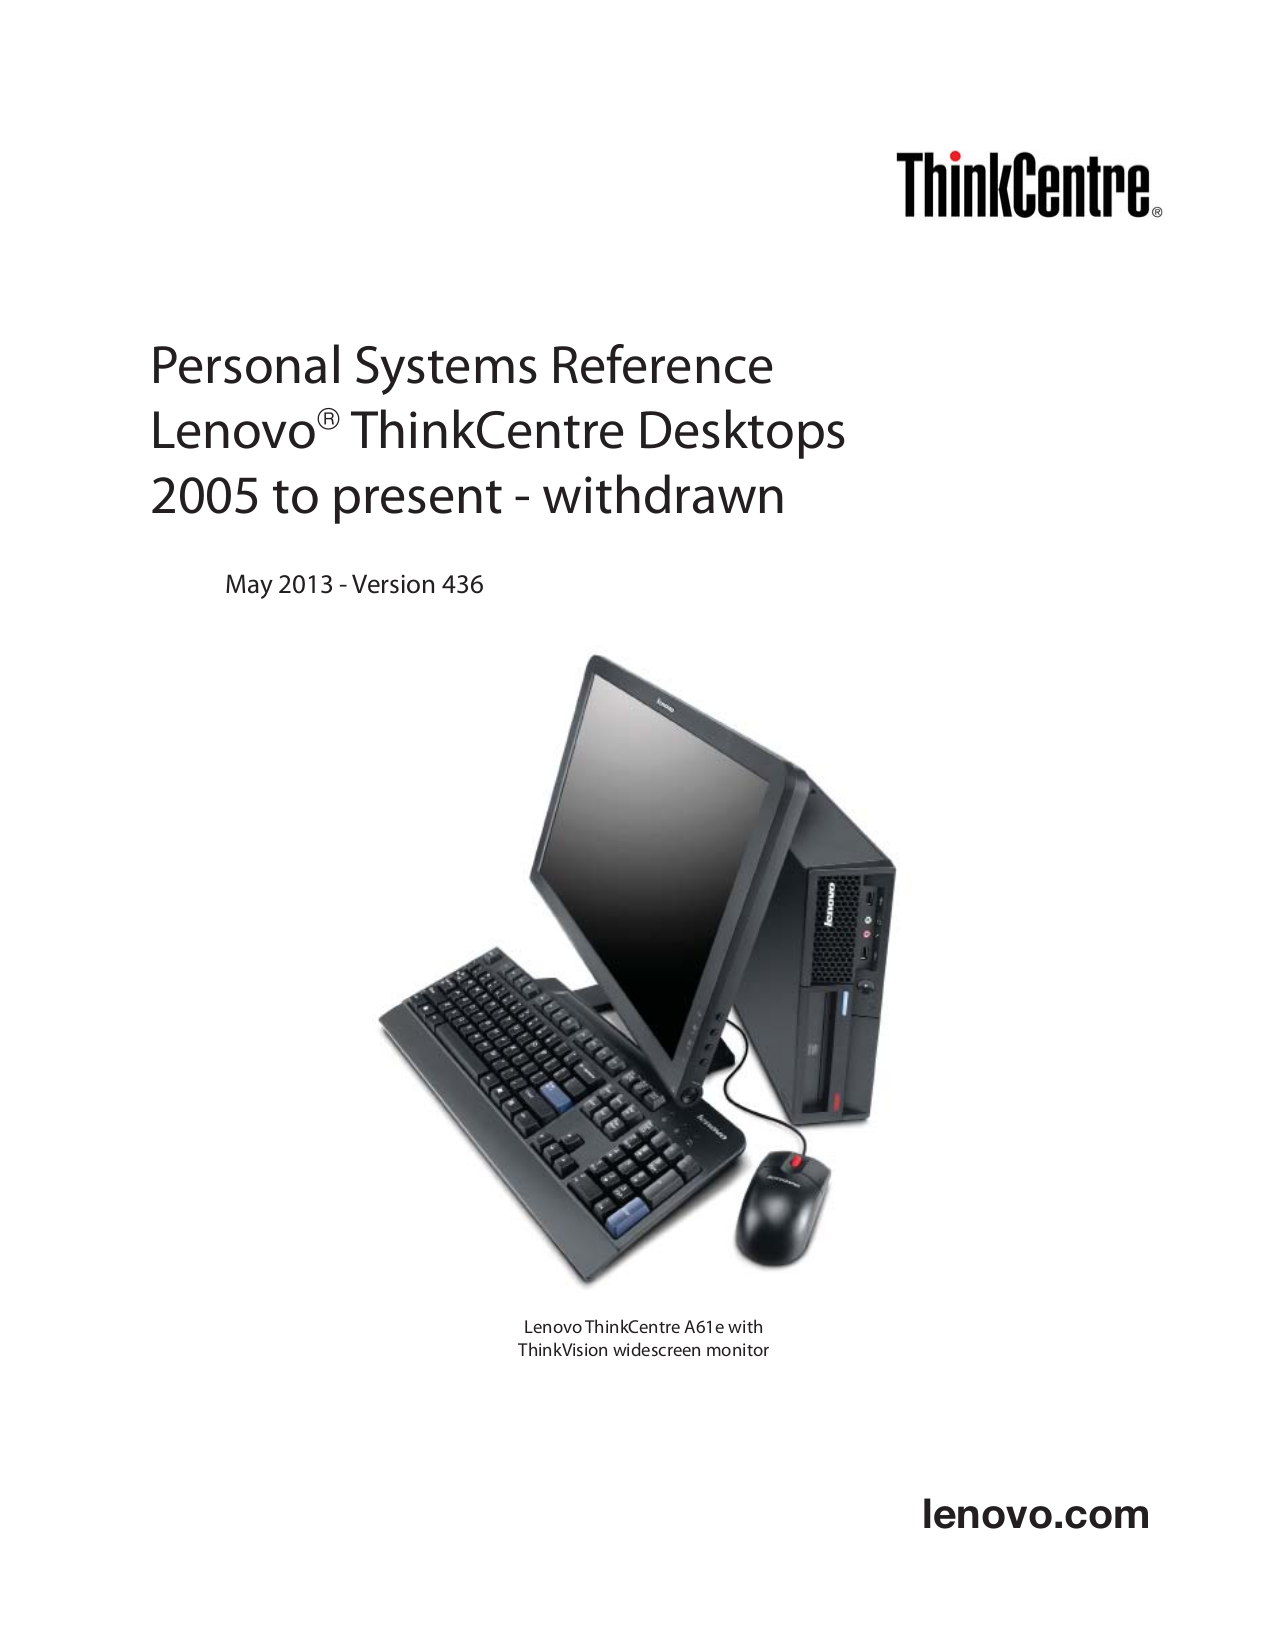 pdf for Lenovo Desktop ThinkCentre M55 9168 manual